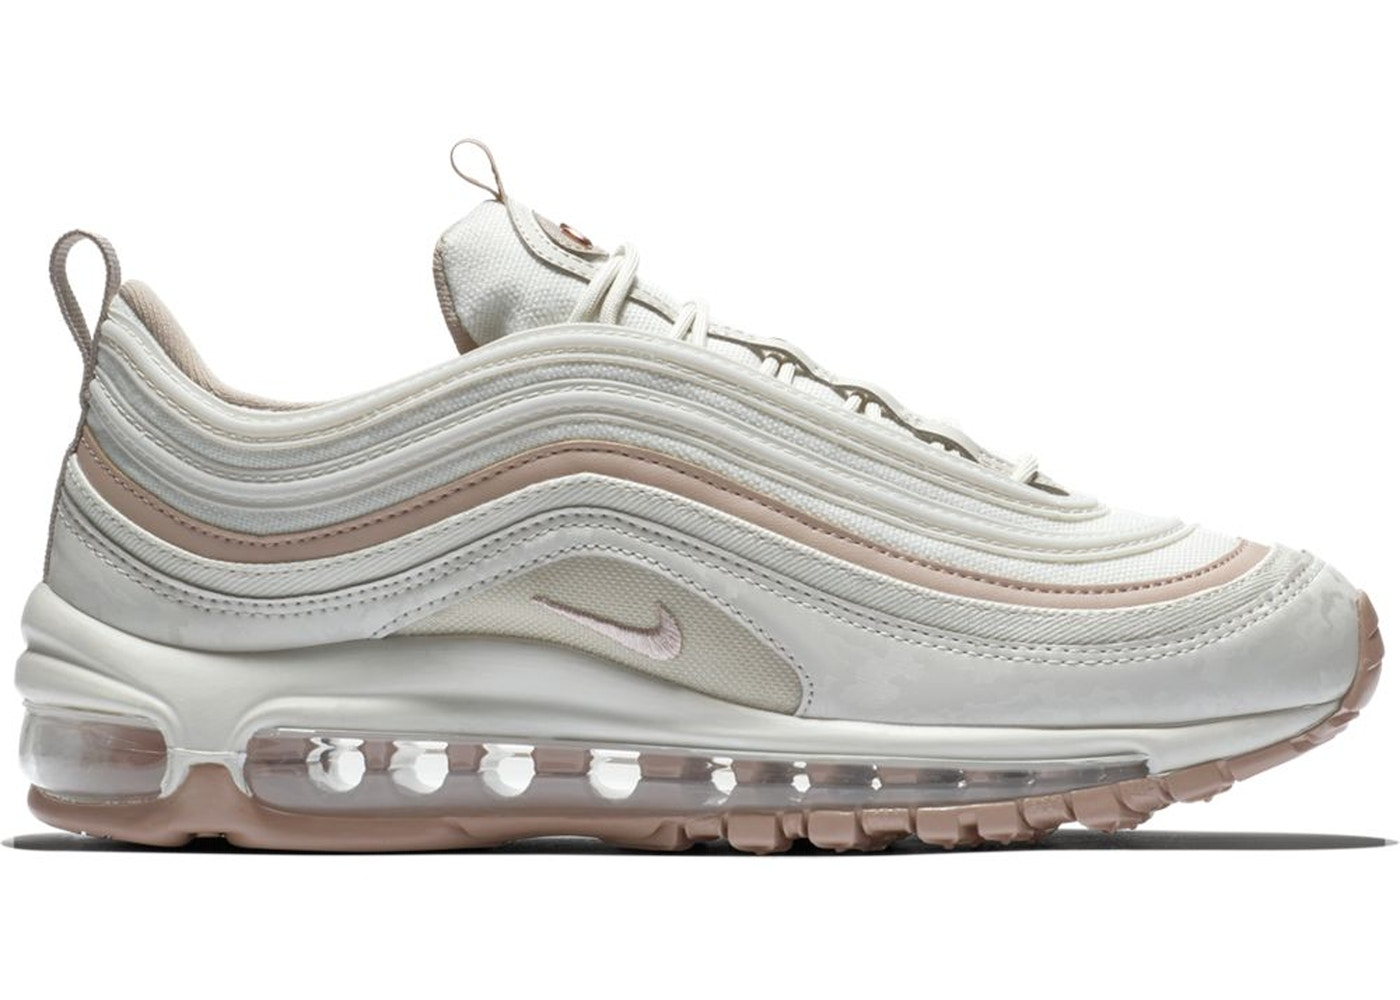 Air Max 97 Light Bone Diffused Taupe (W)